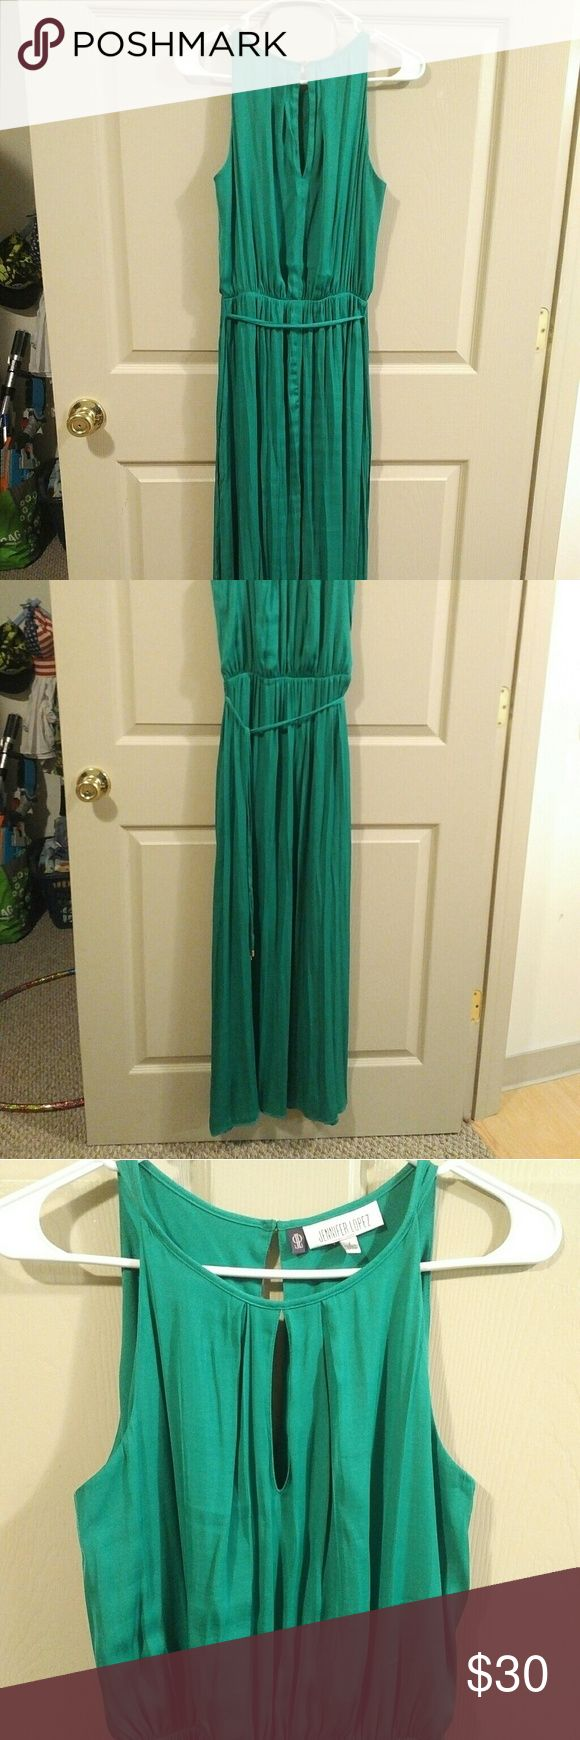 Long, green dress. Dressy or casual! Green silky dress with eyelet opening at neckline. Dress up with heels or wear casually with sandals. Worn one time. Jennifer Lopez Dresses Maxi